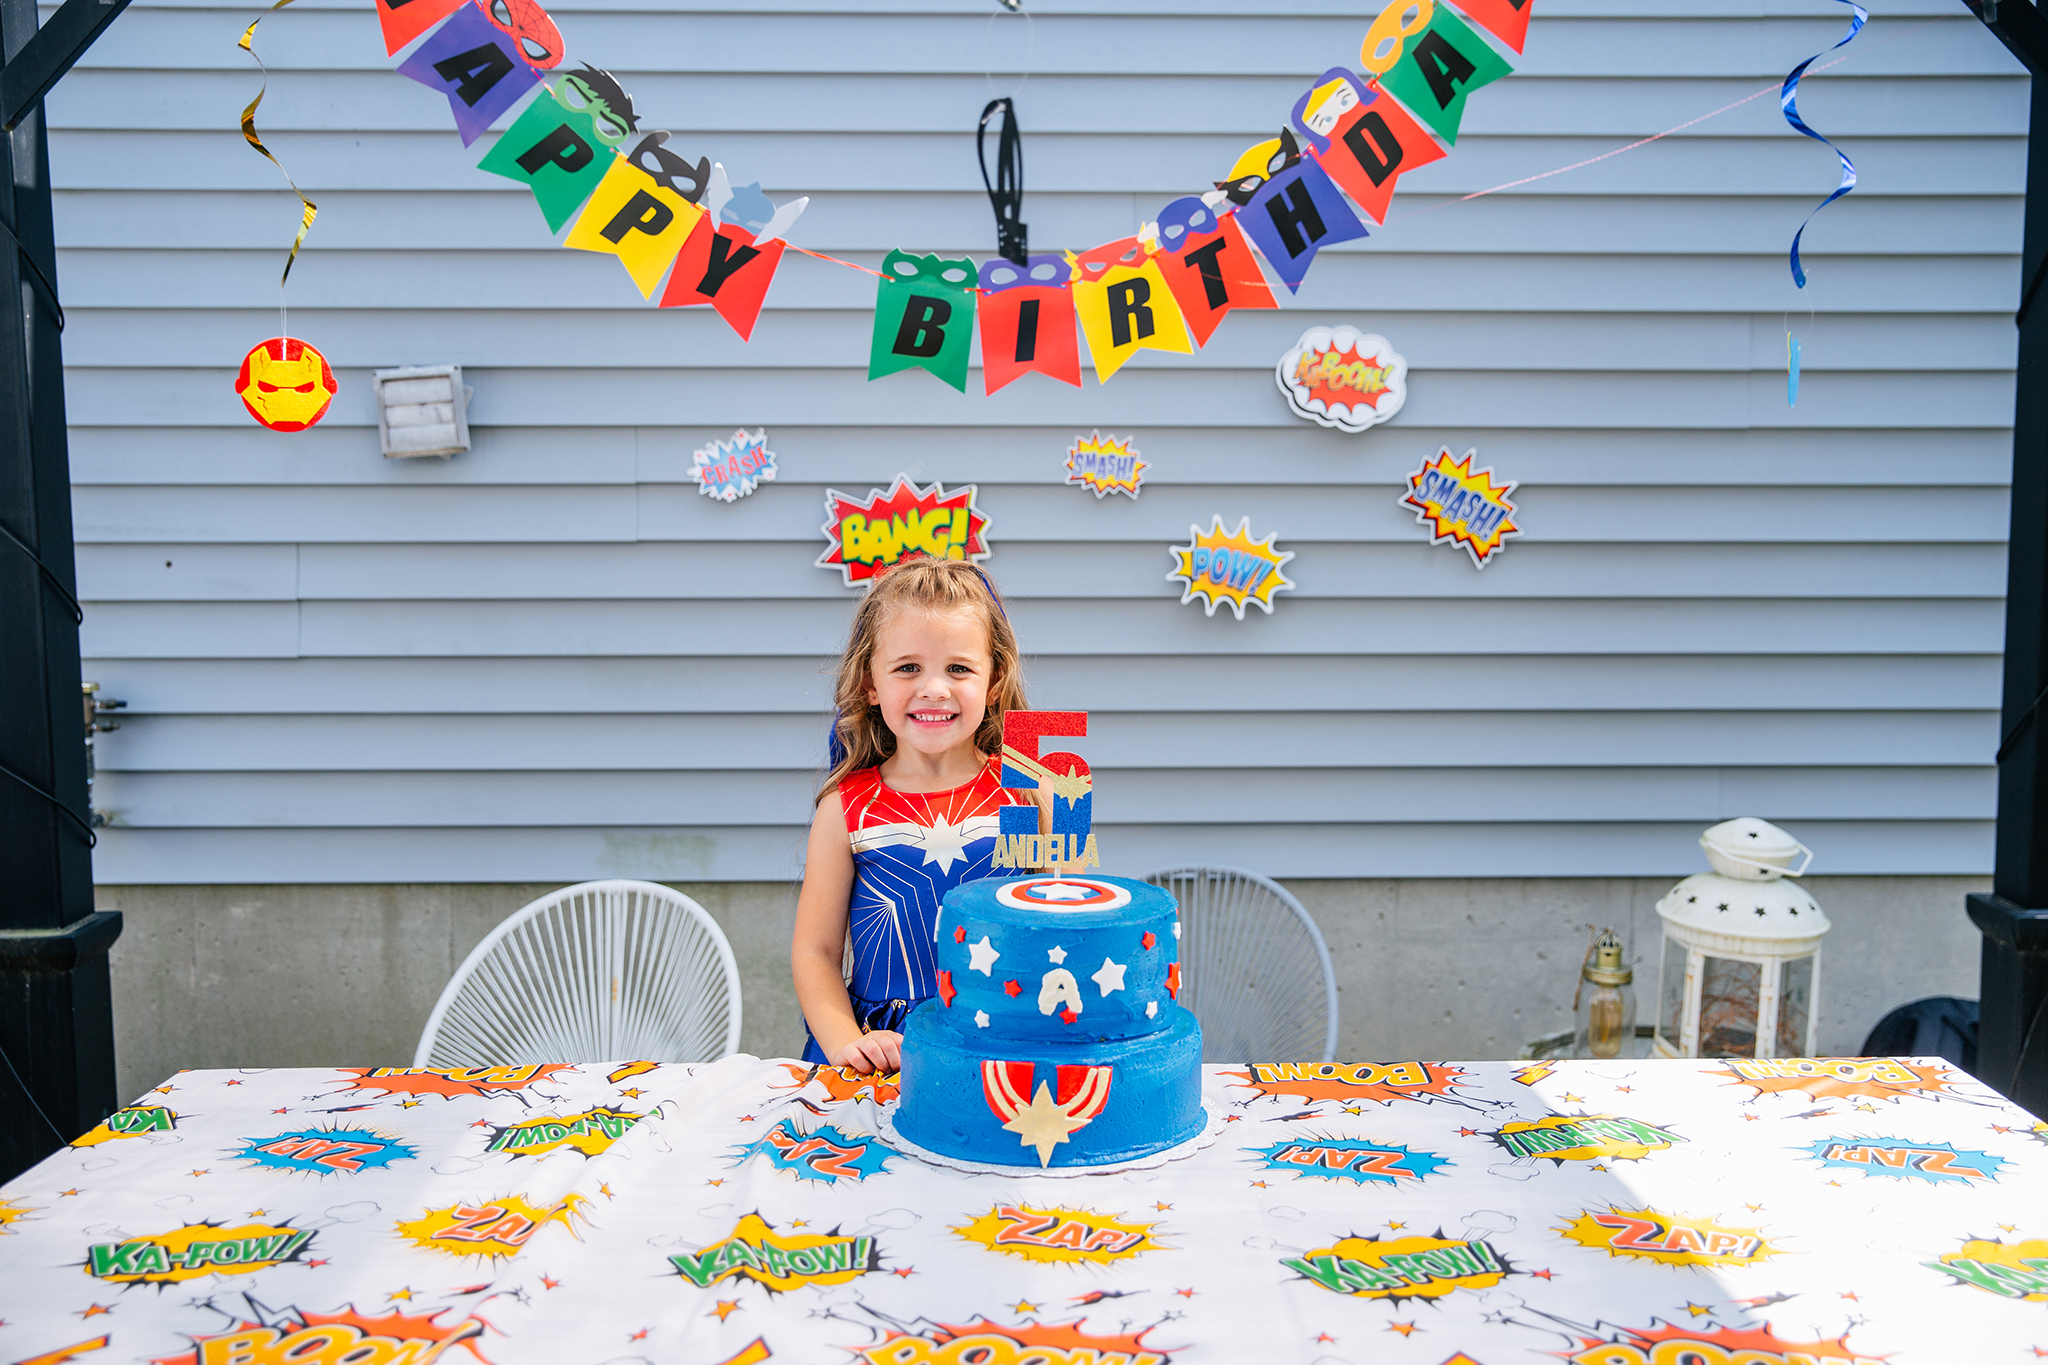 photography by mallory - birthday party photographer.jpg